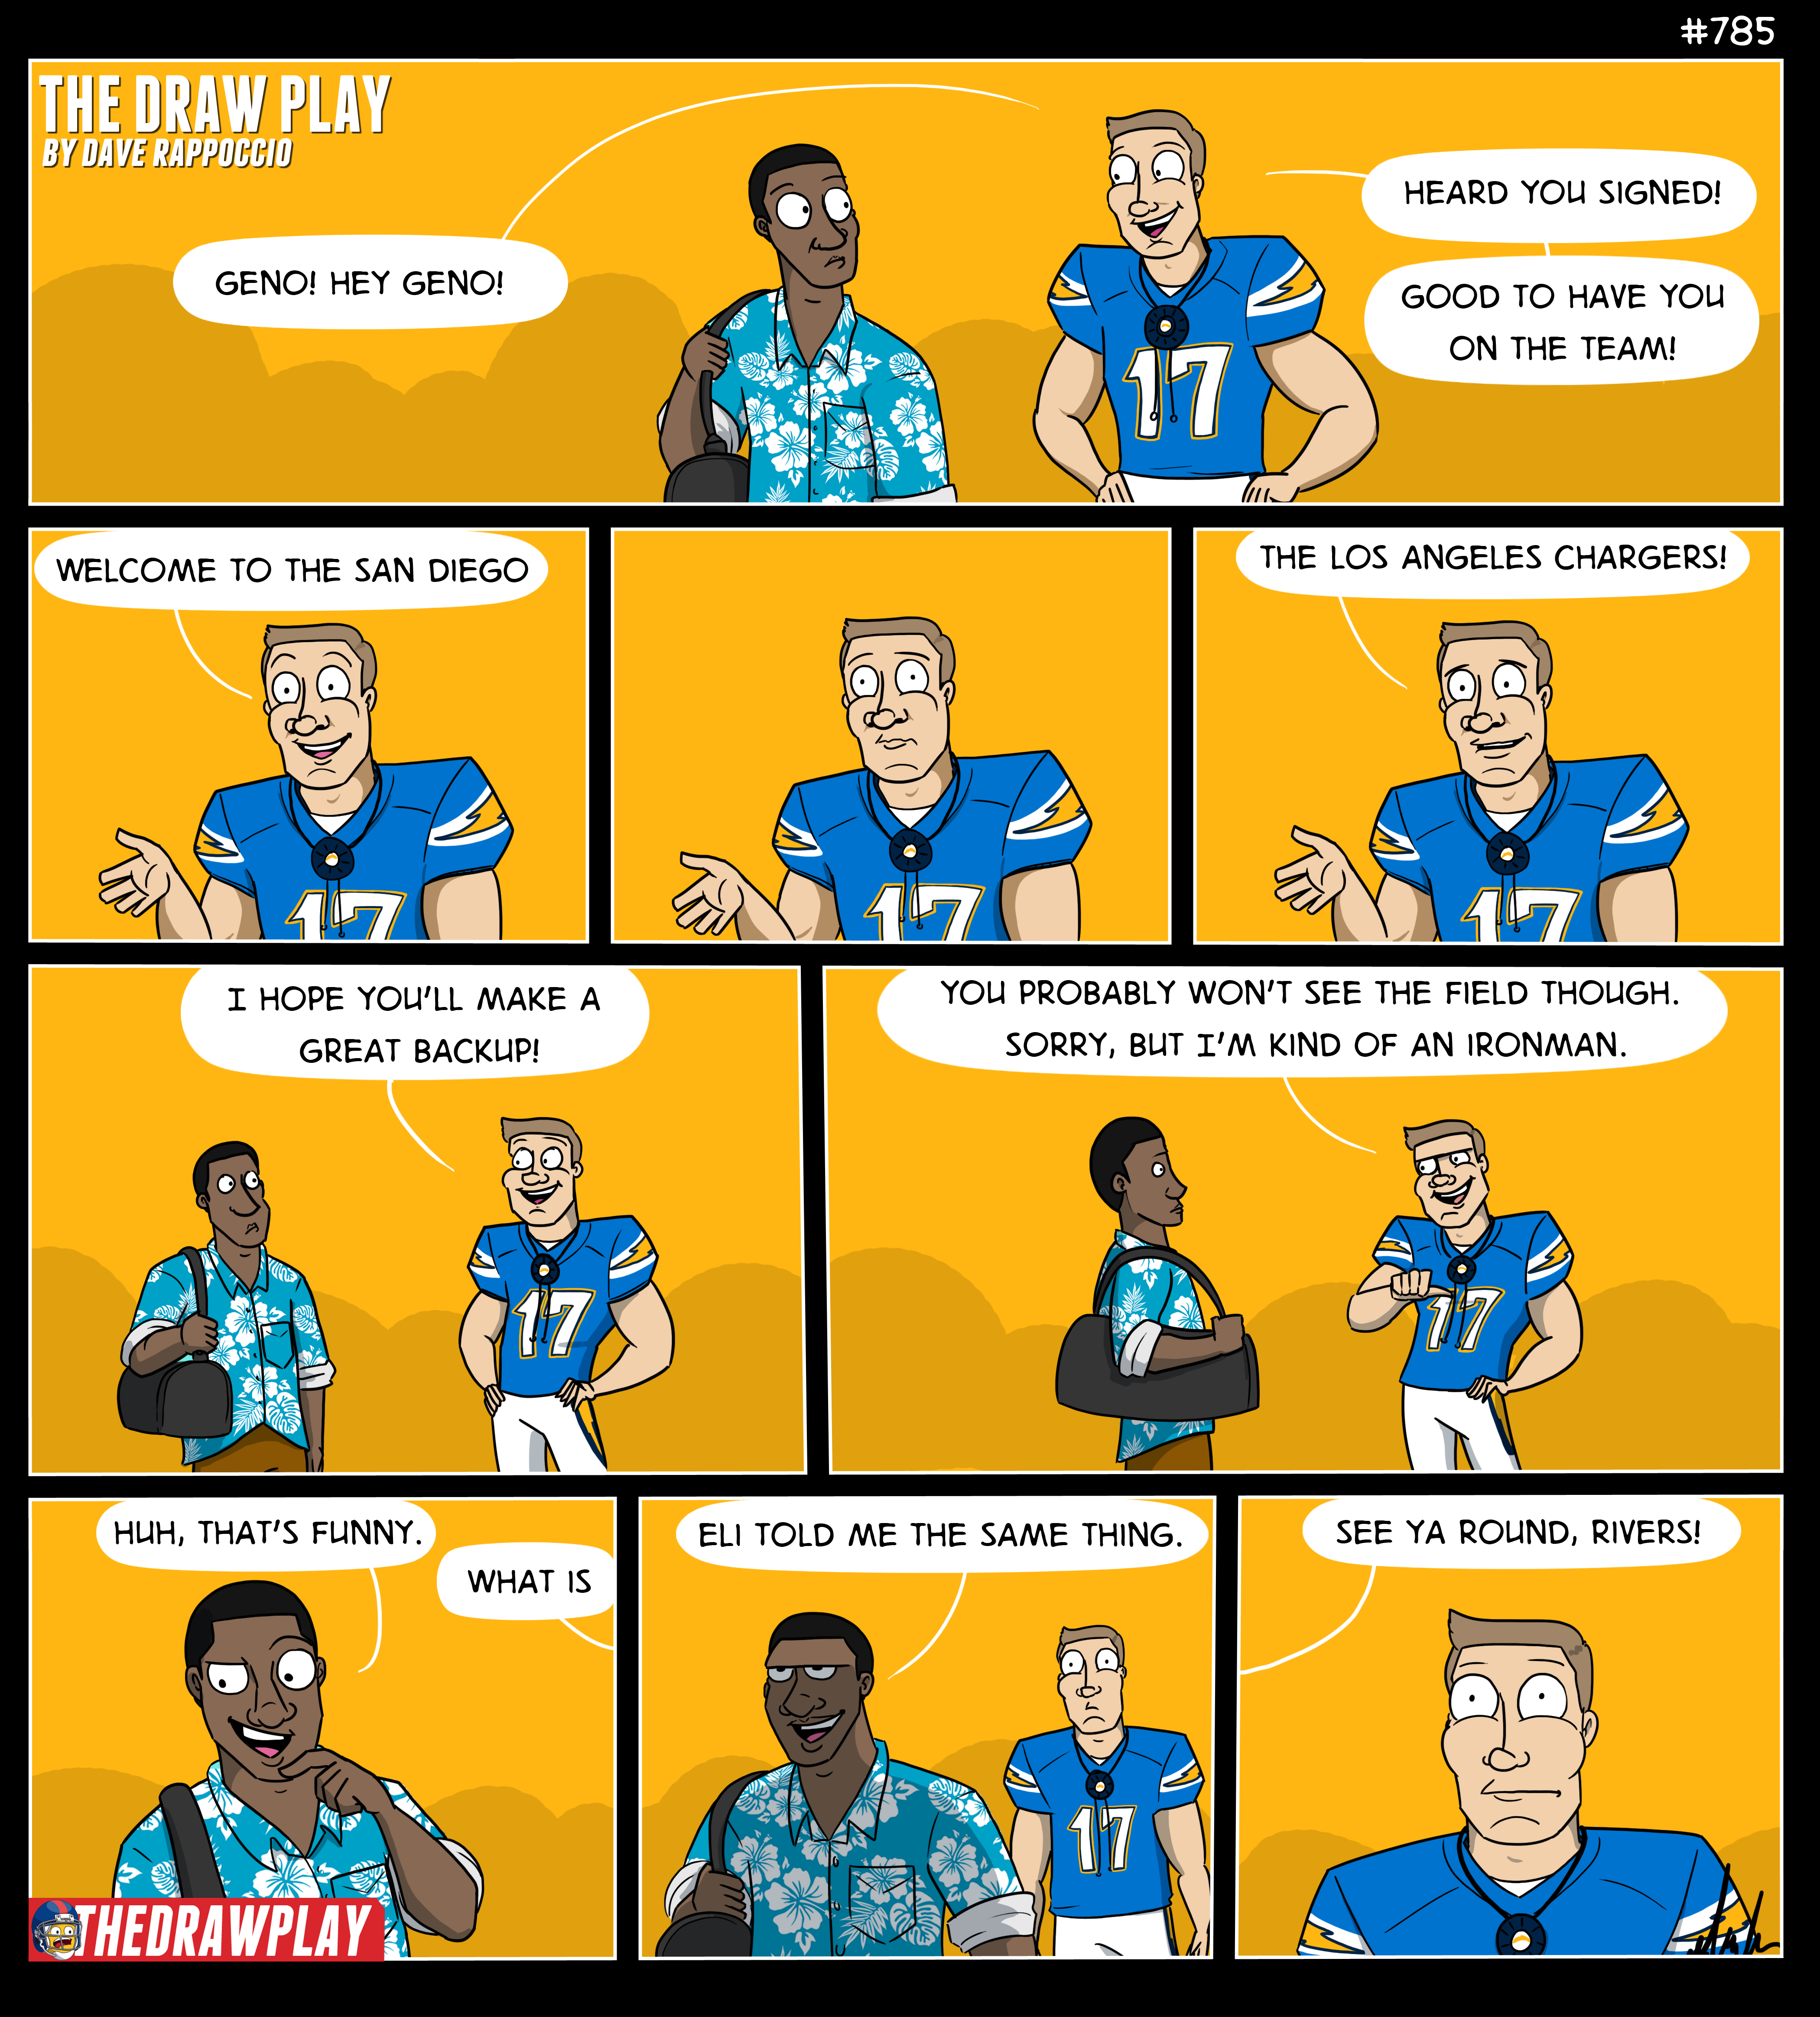 That second row is me every time I talk about the Chargers now.